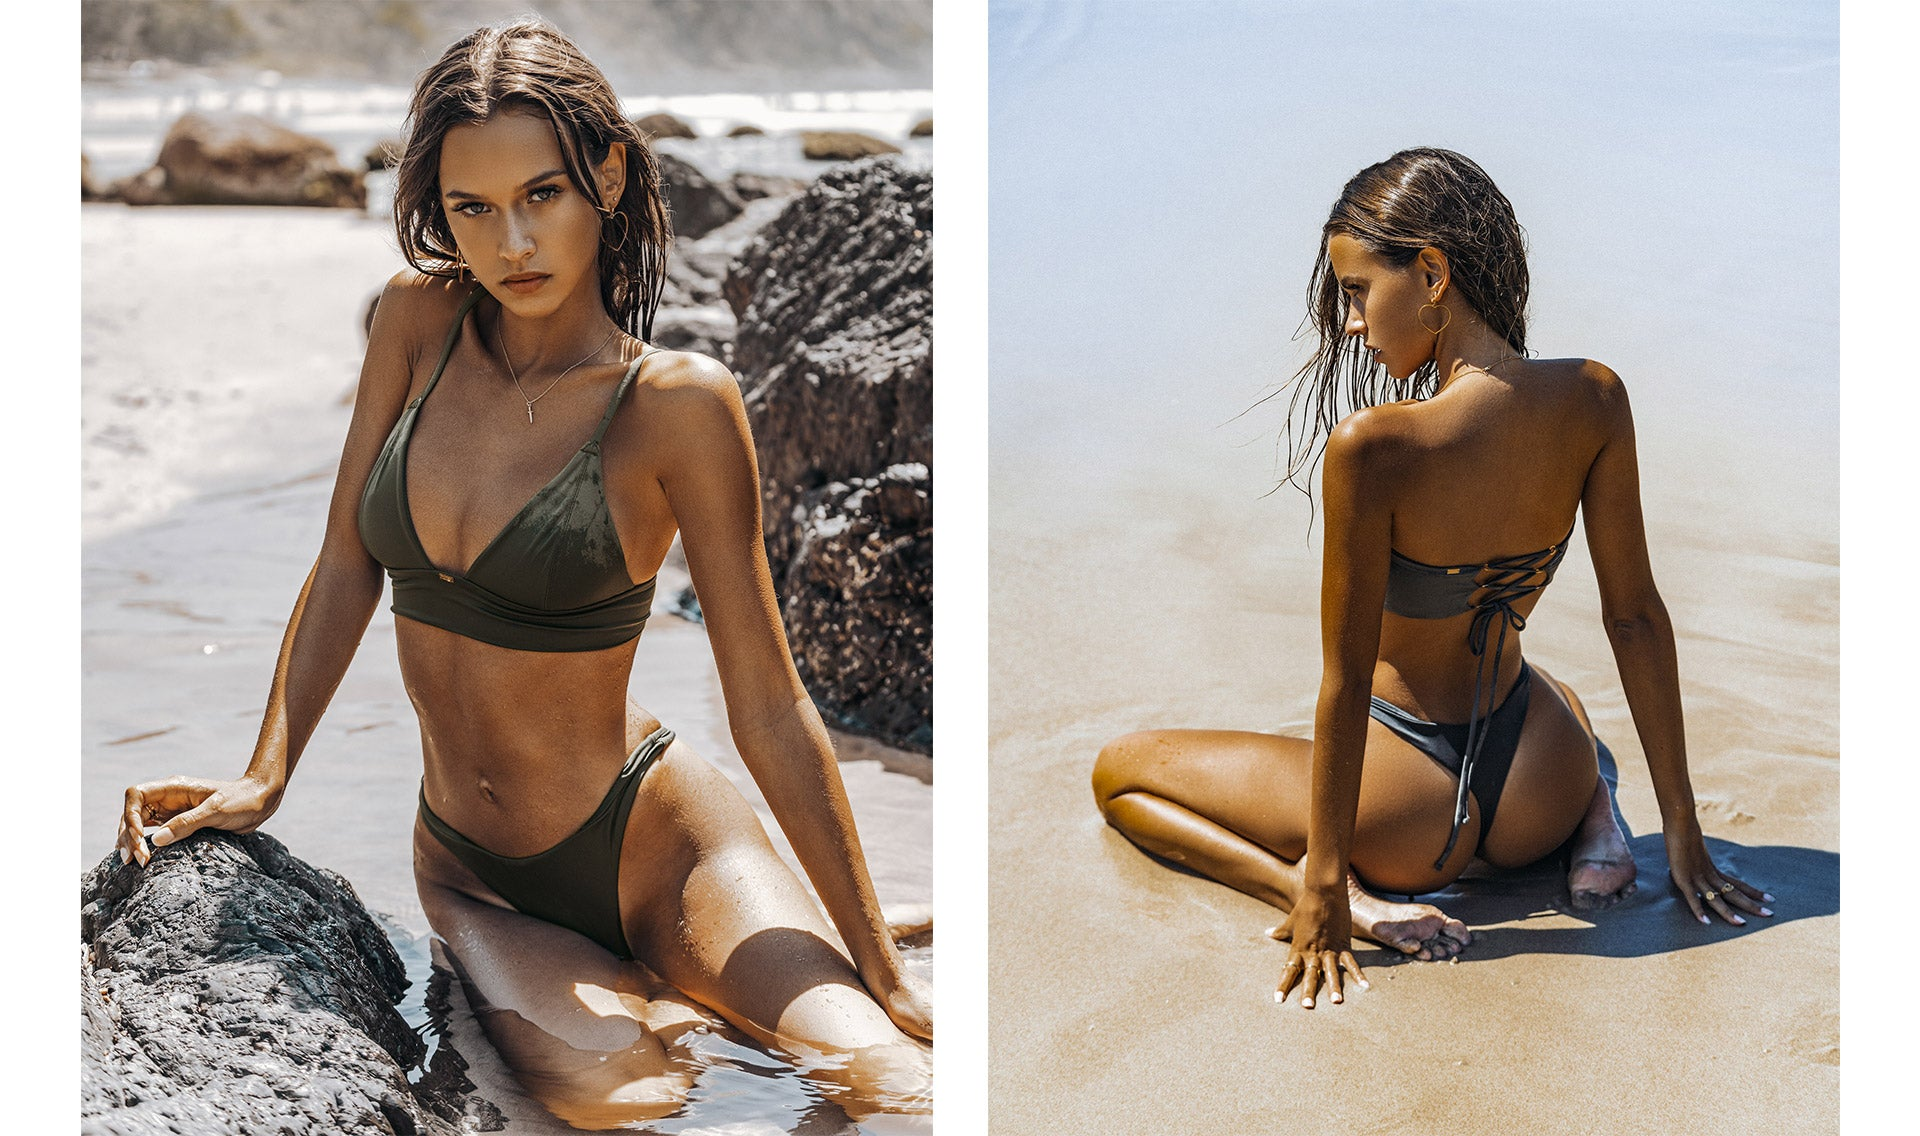 Isabelle Mathers wearing the For You Coconut Bikini Crop Set while lying down on a beach